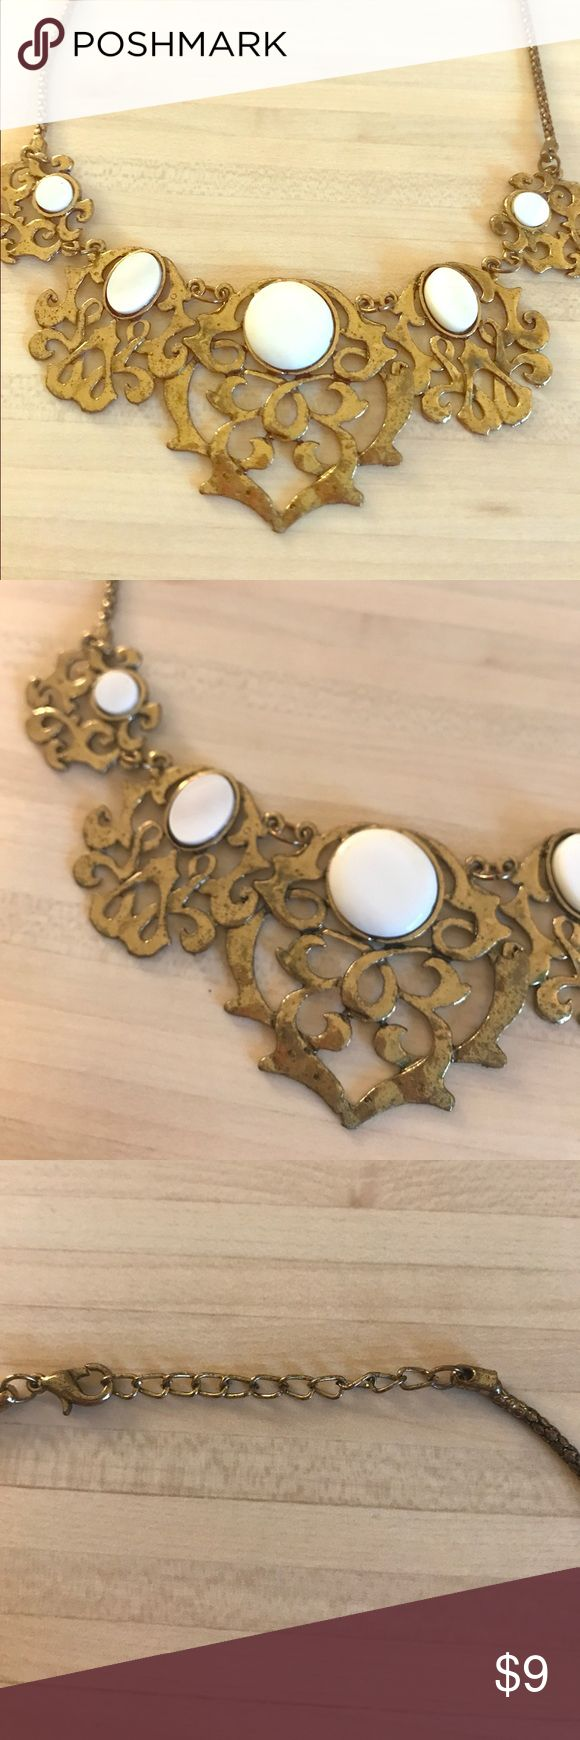 Gold & Opal necklace ~Francesca's collection~ Gold bib necklace *costume jewelry* with iridescent white stones. Make me an offer! Francesca's Collections Jewelry Necklaces